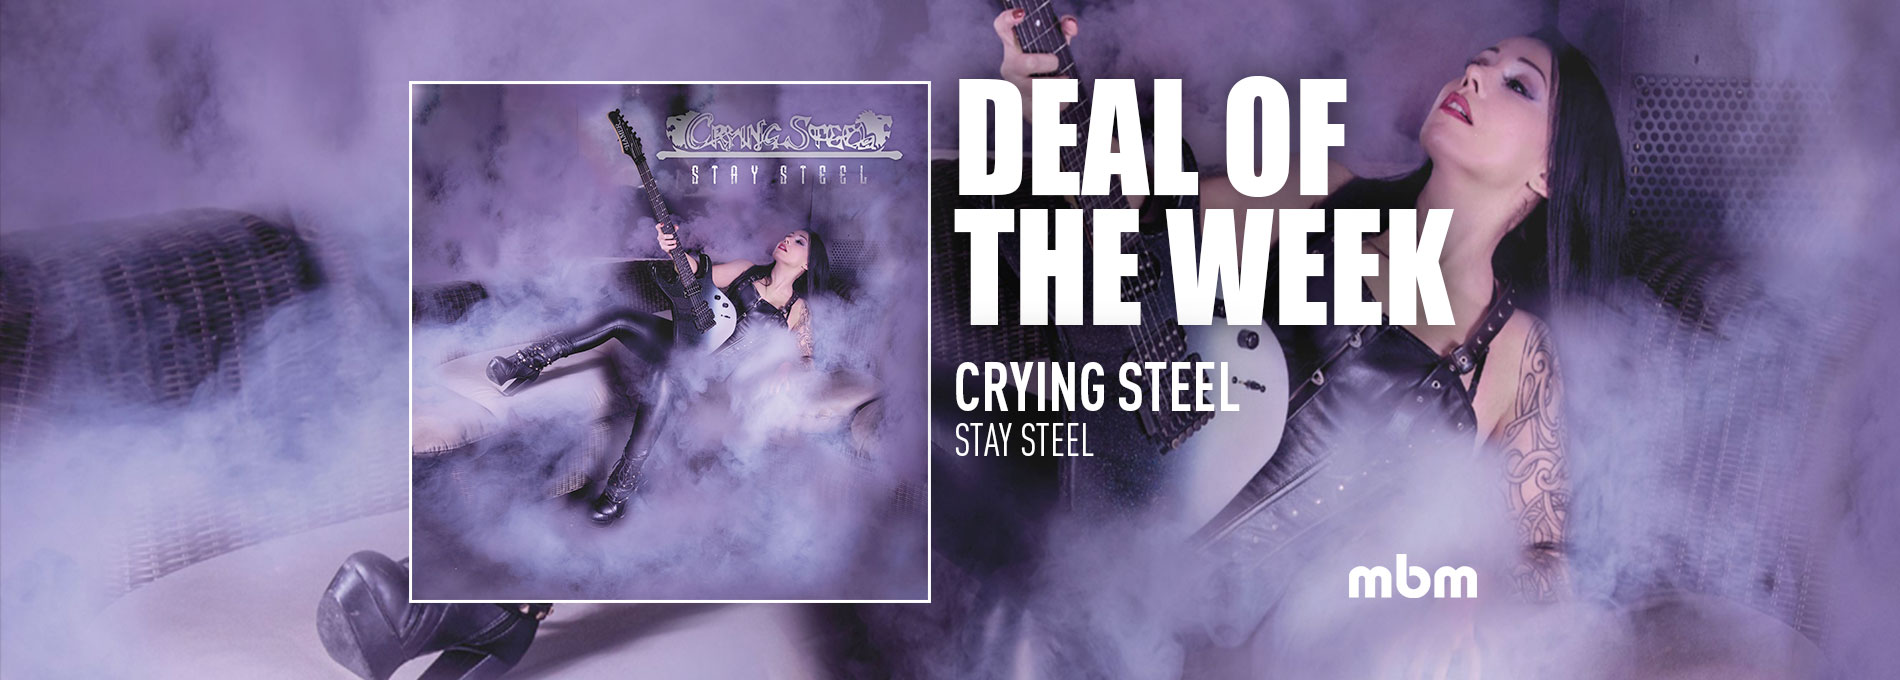 Deal Of The Week: CRYING STEEL - Stay Steel